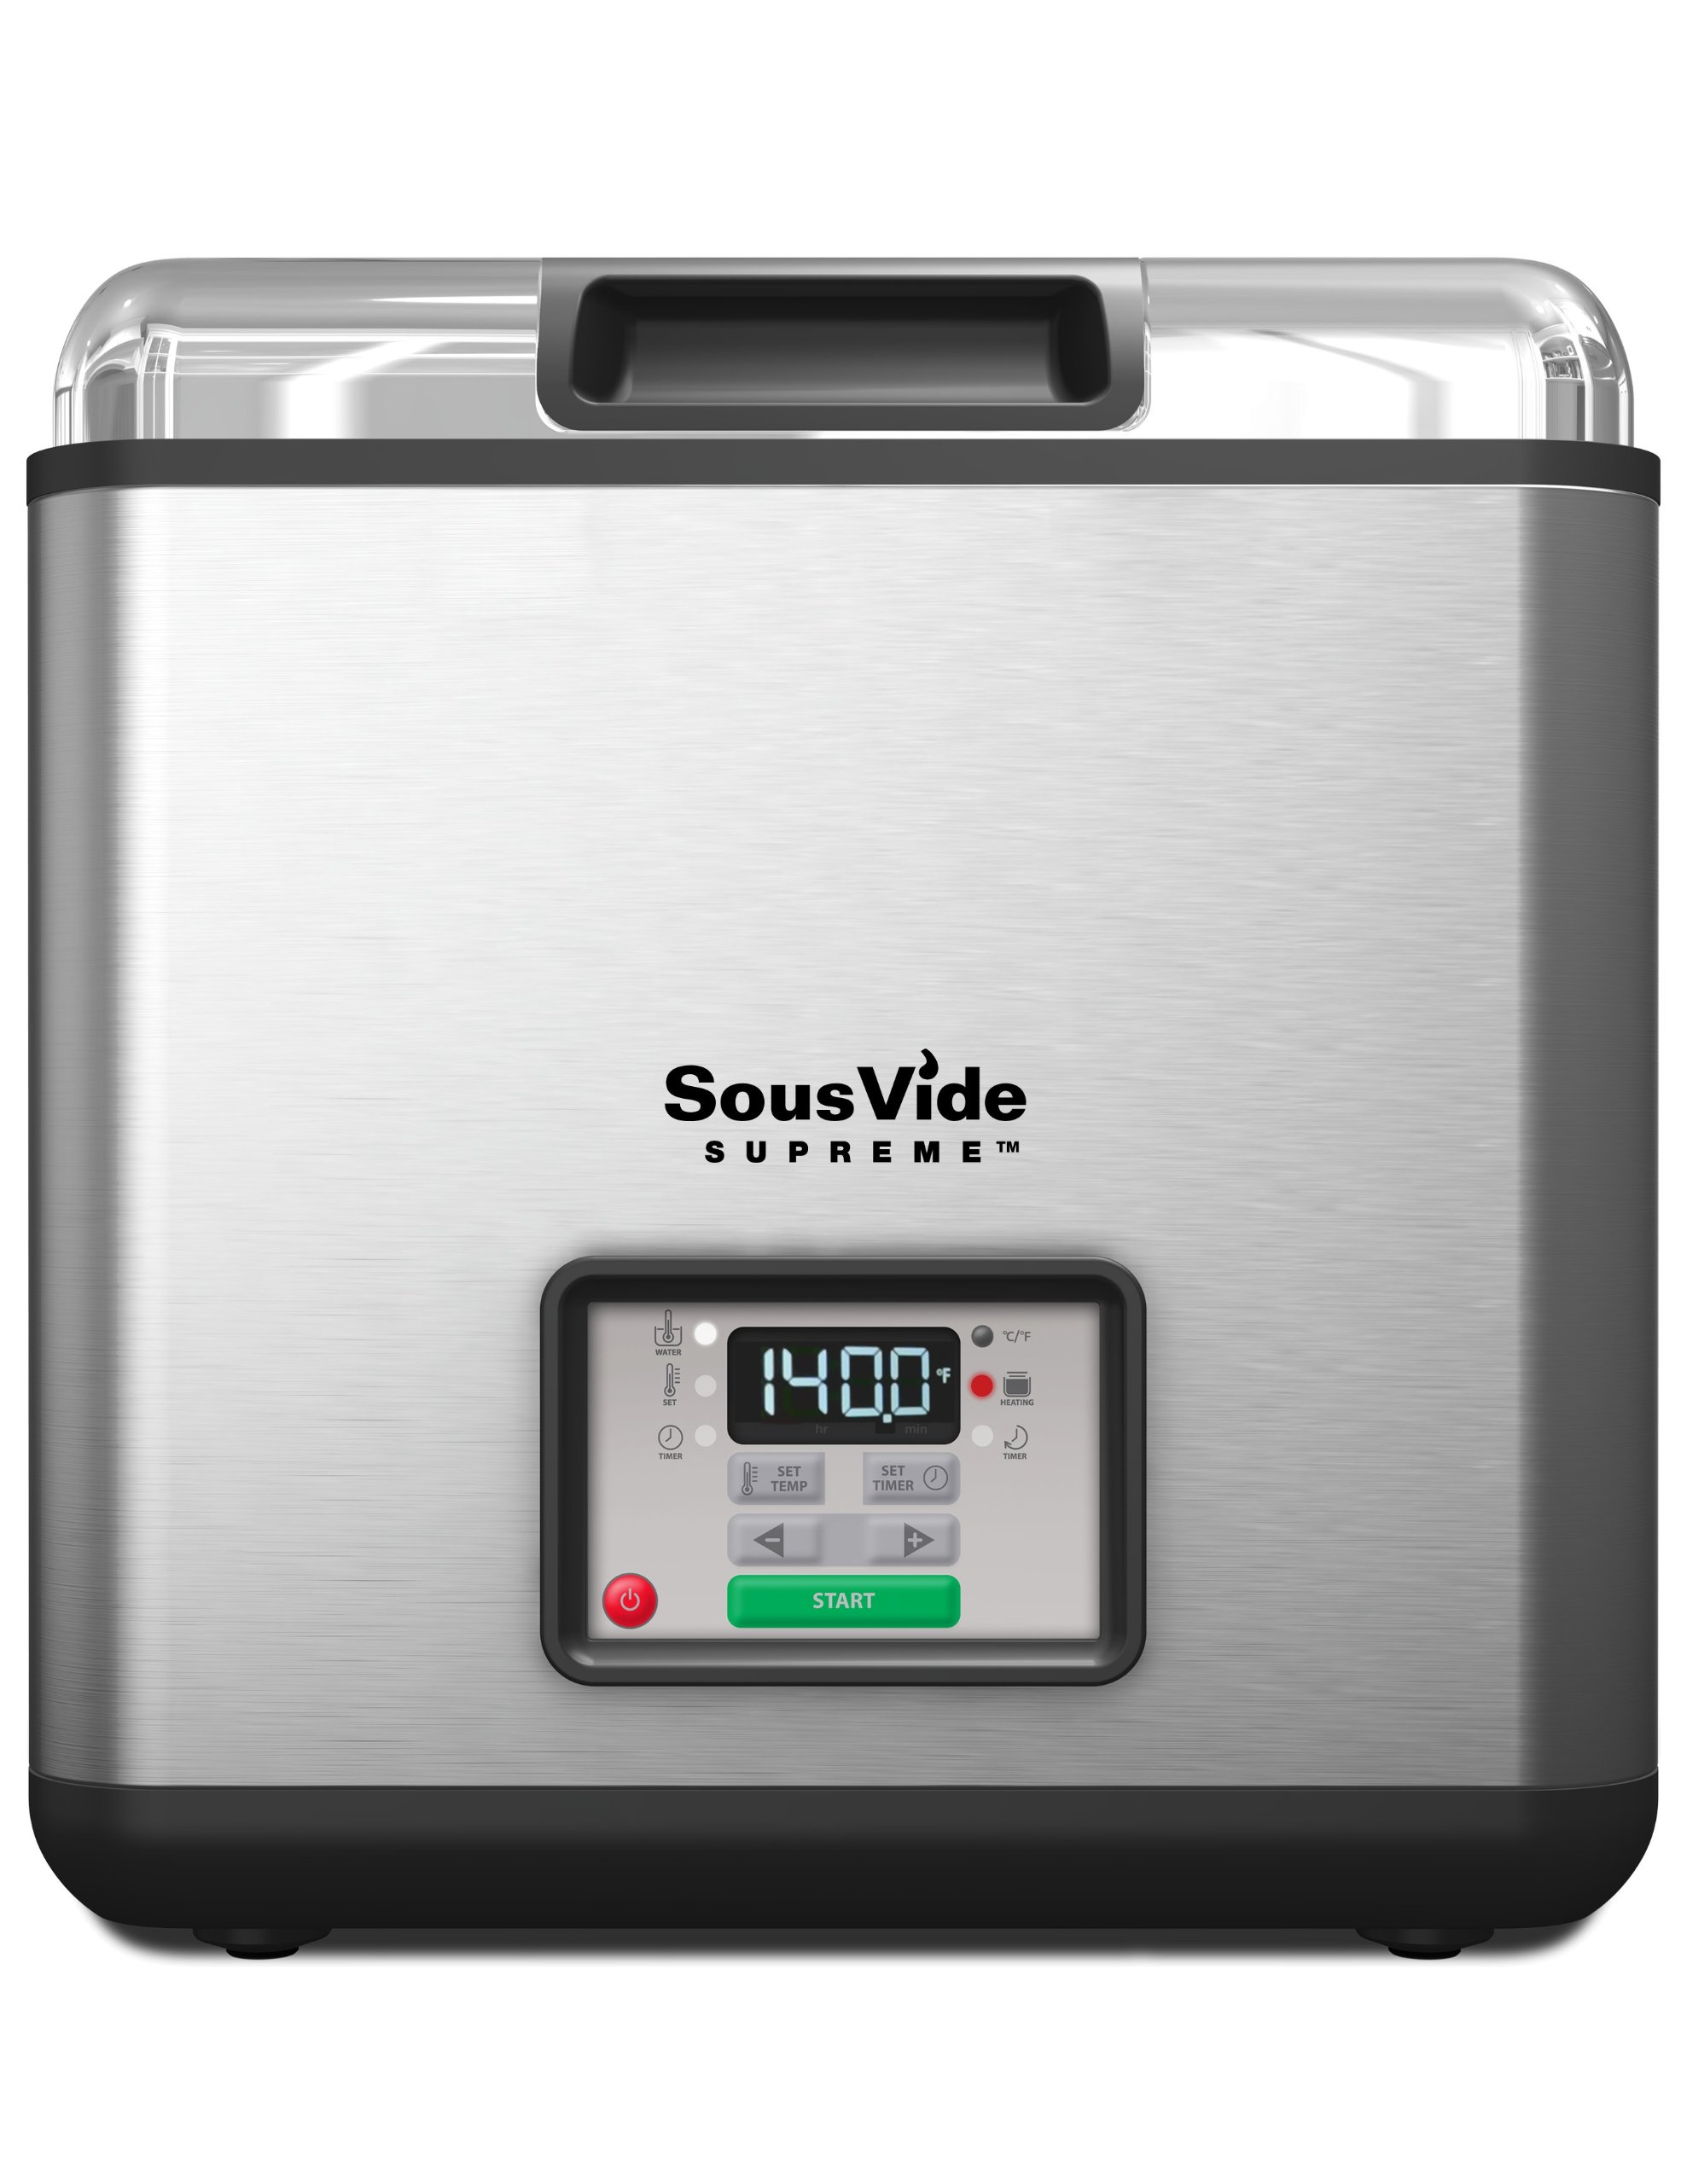 Sous Vide Supreme Water Oven, SVS10LS by Sous Vide